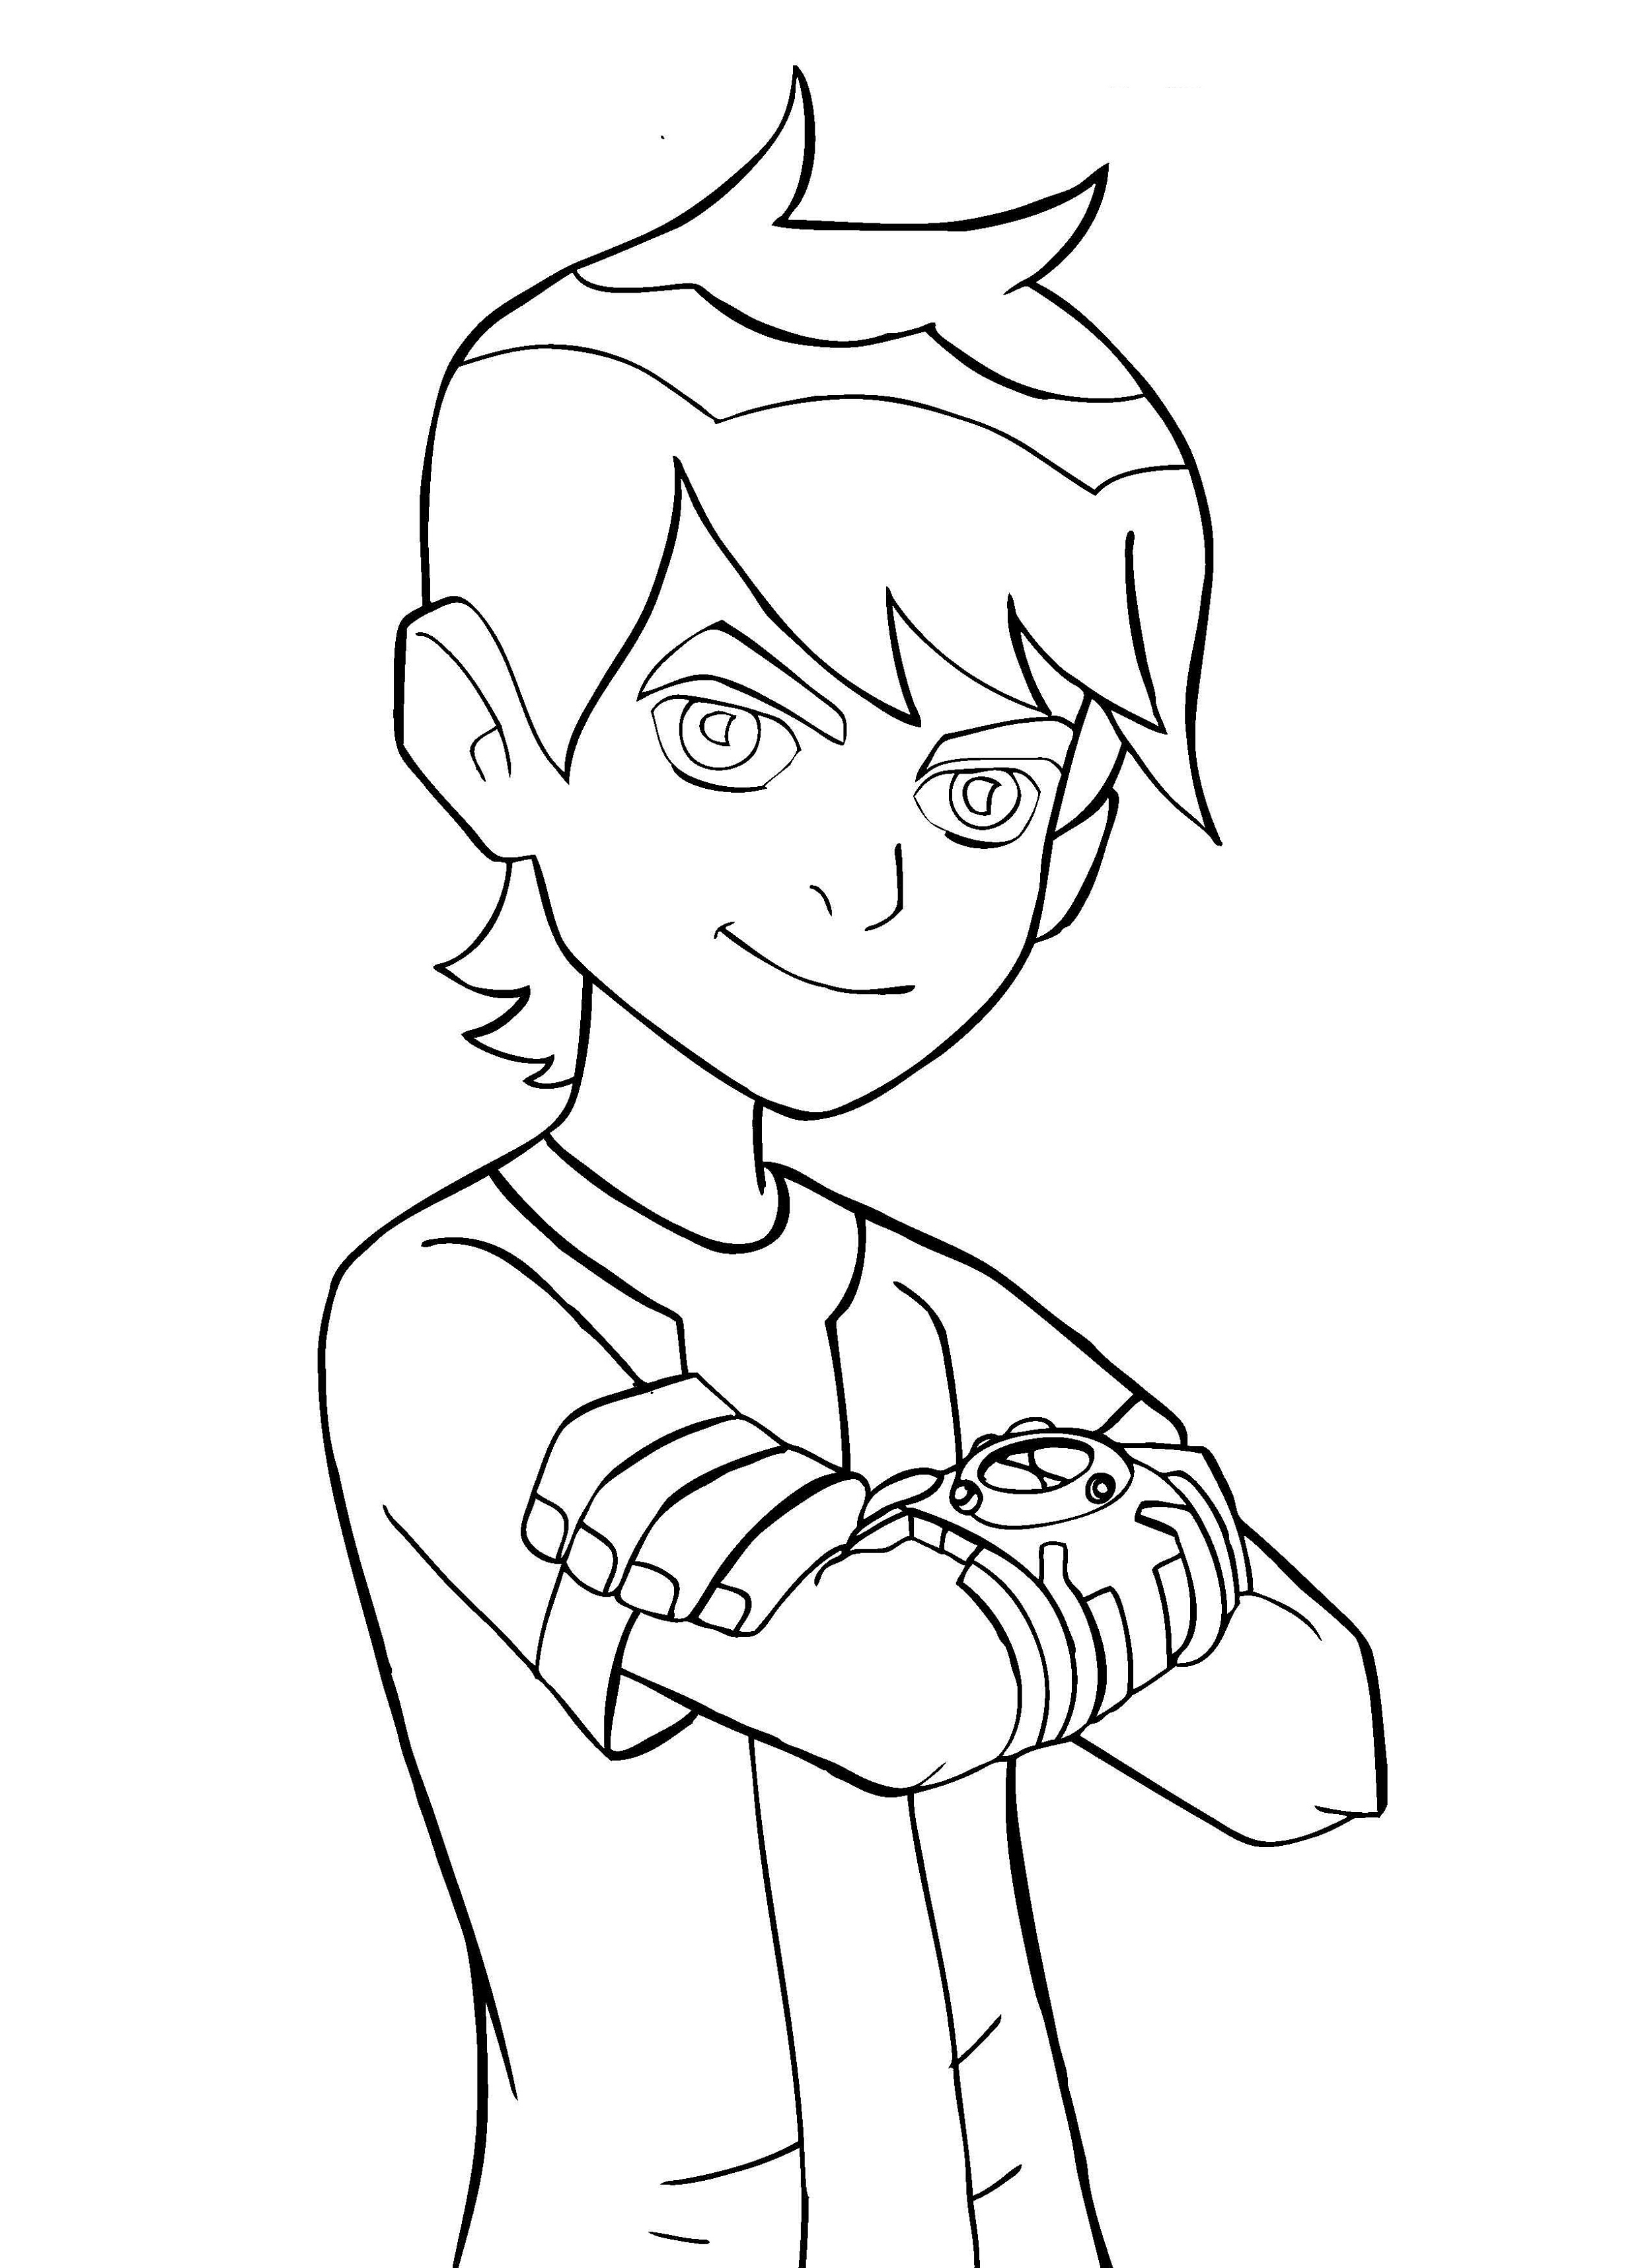 ben 10 coloring pictures ben 10 coloring pictures 10 ben pictures coloring